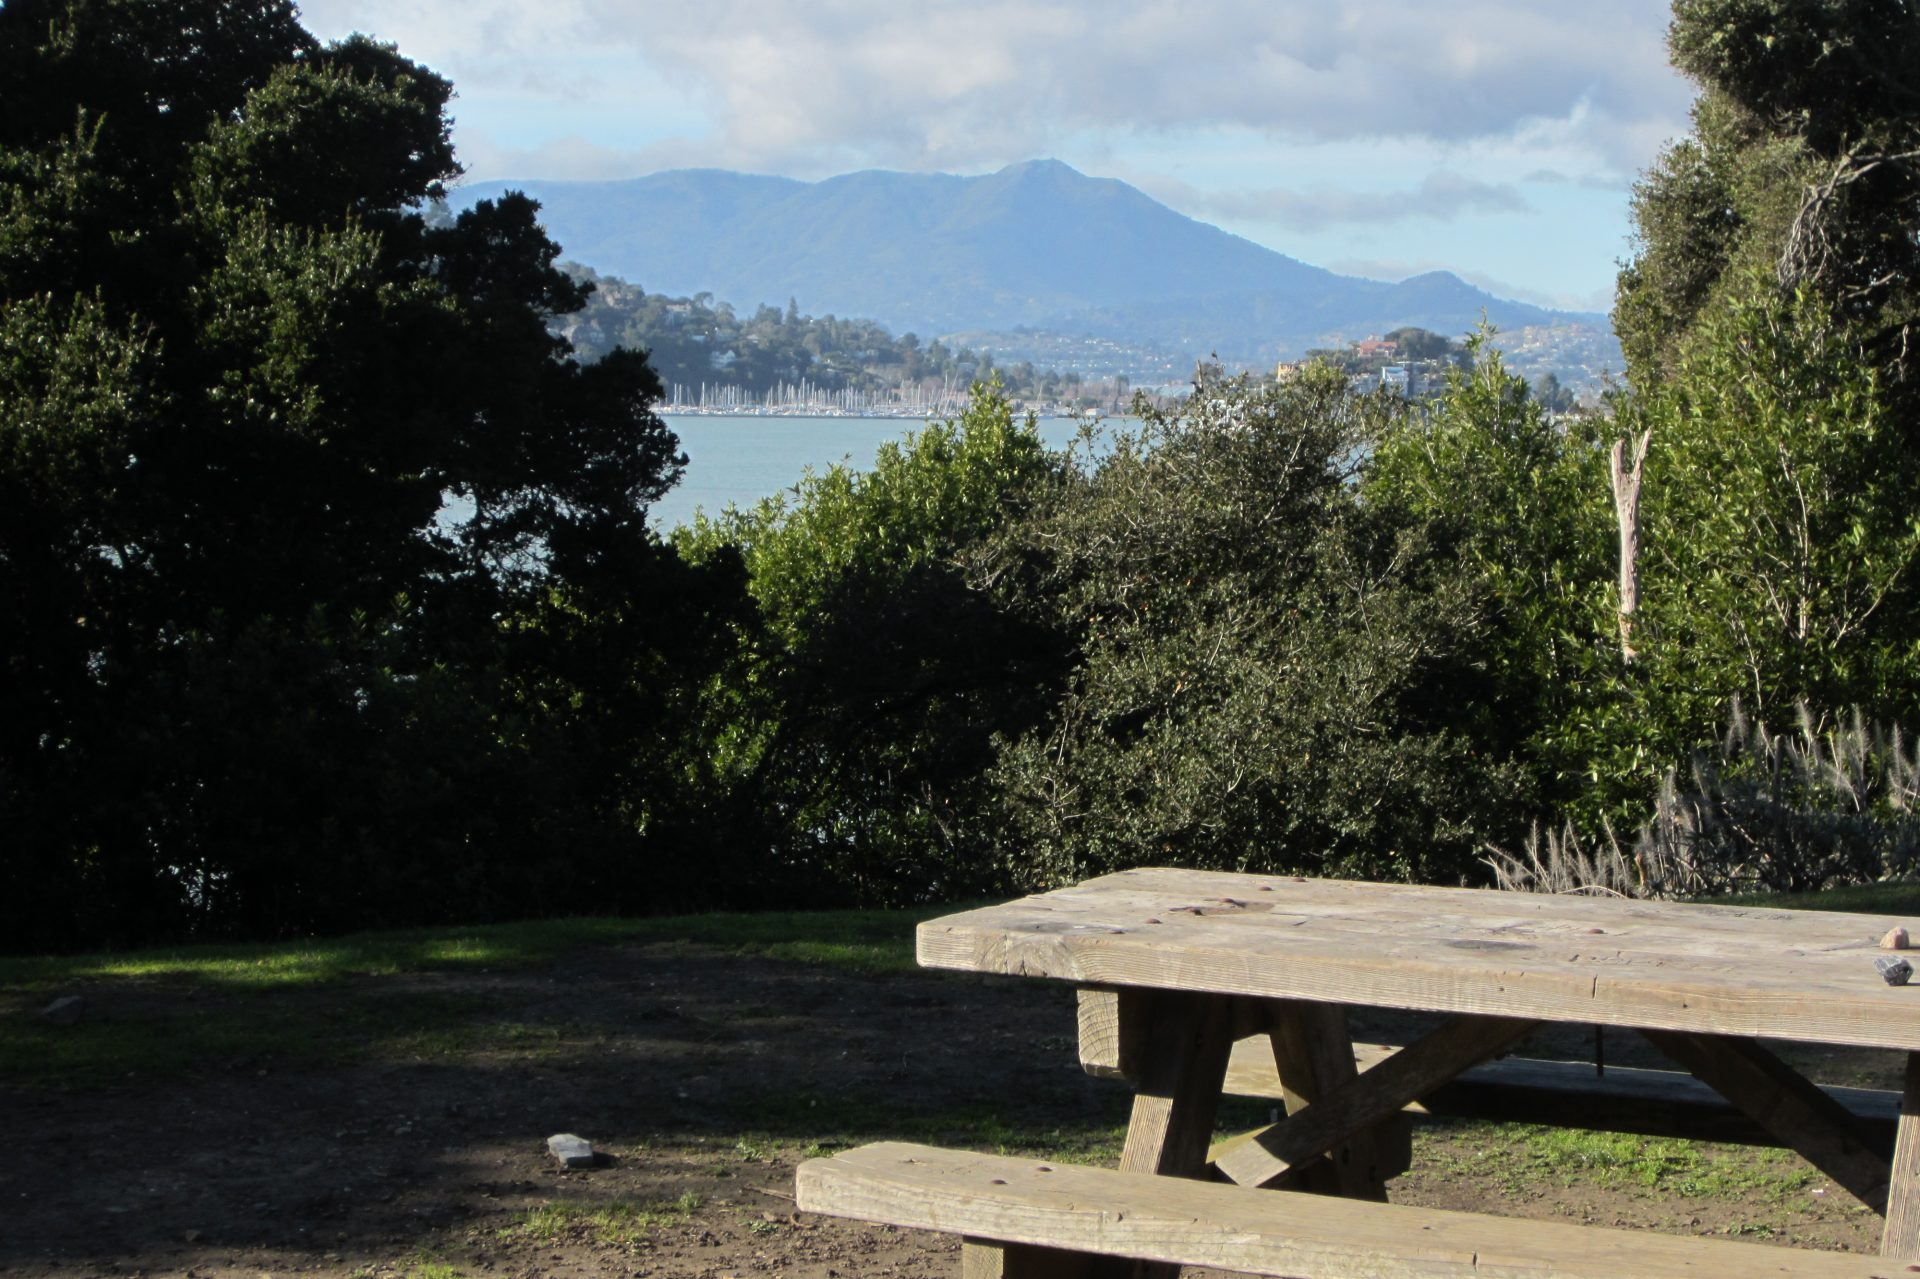 View of Mount Tamalpais from picnic tables